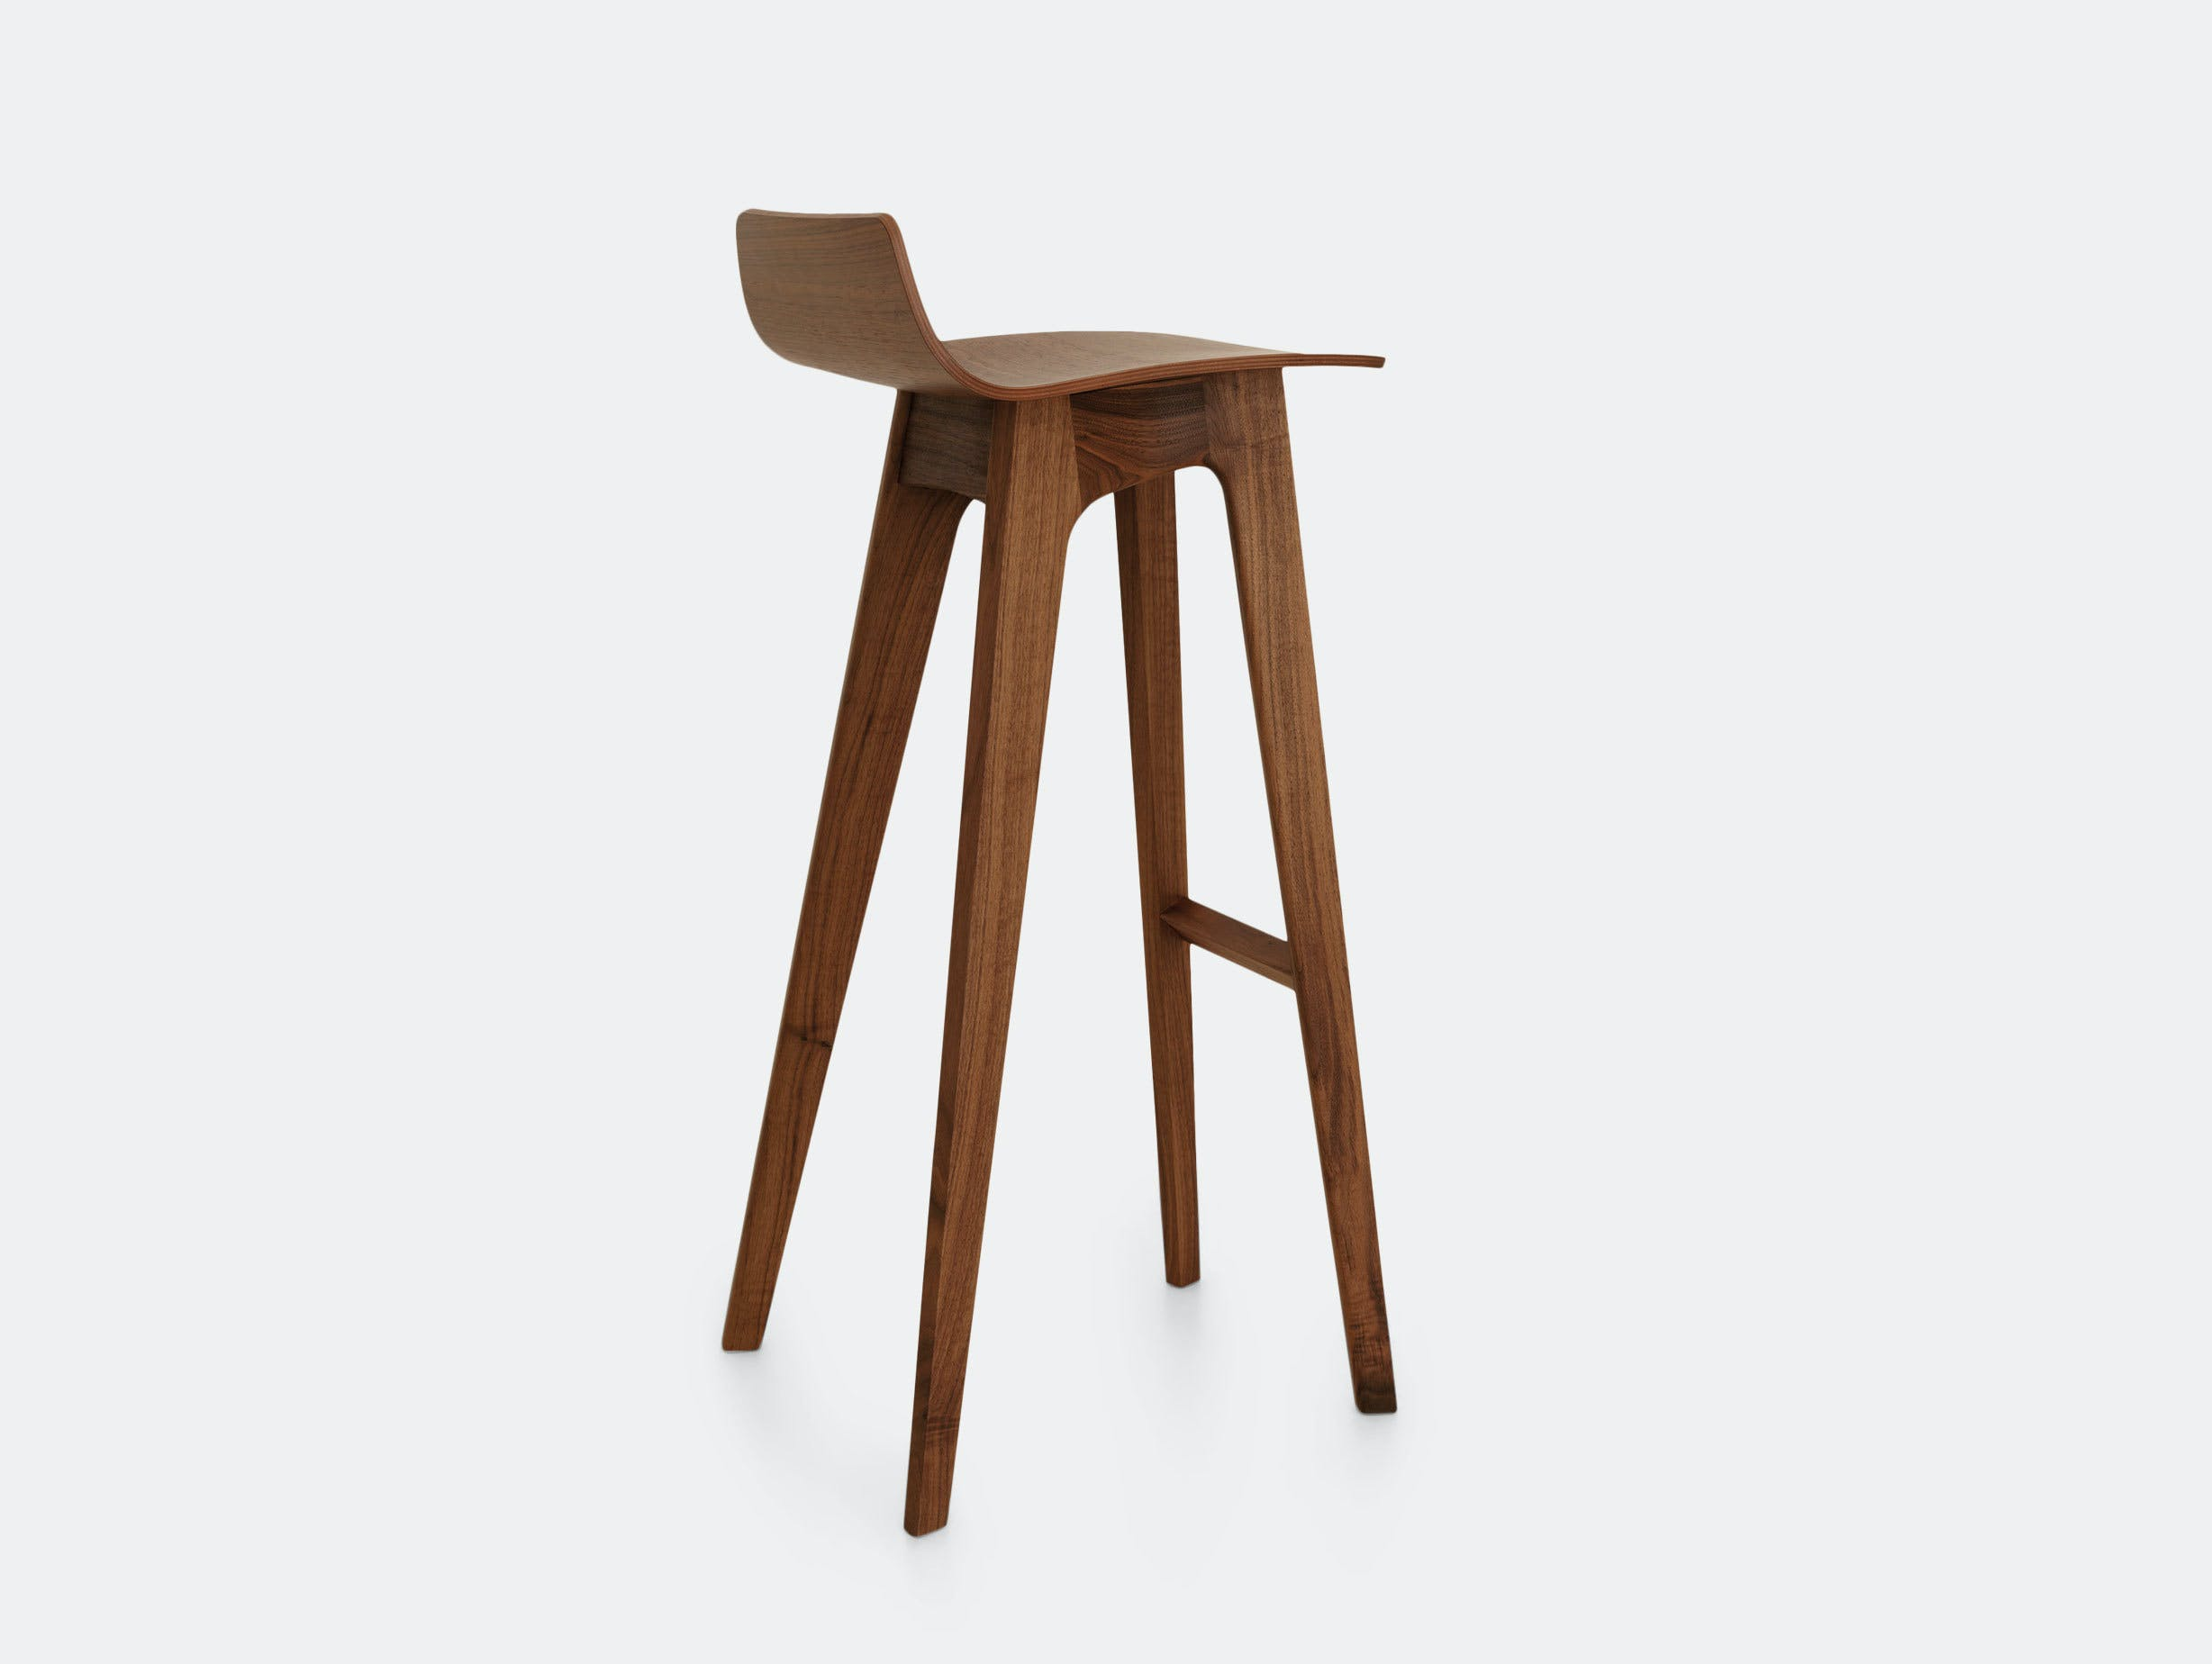 Morph Bar Stool image